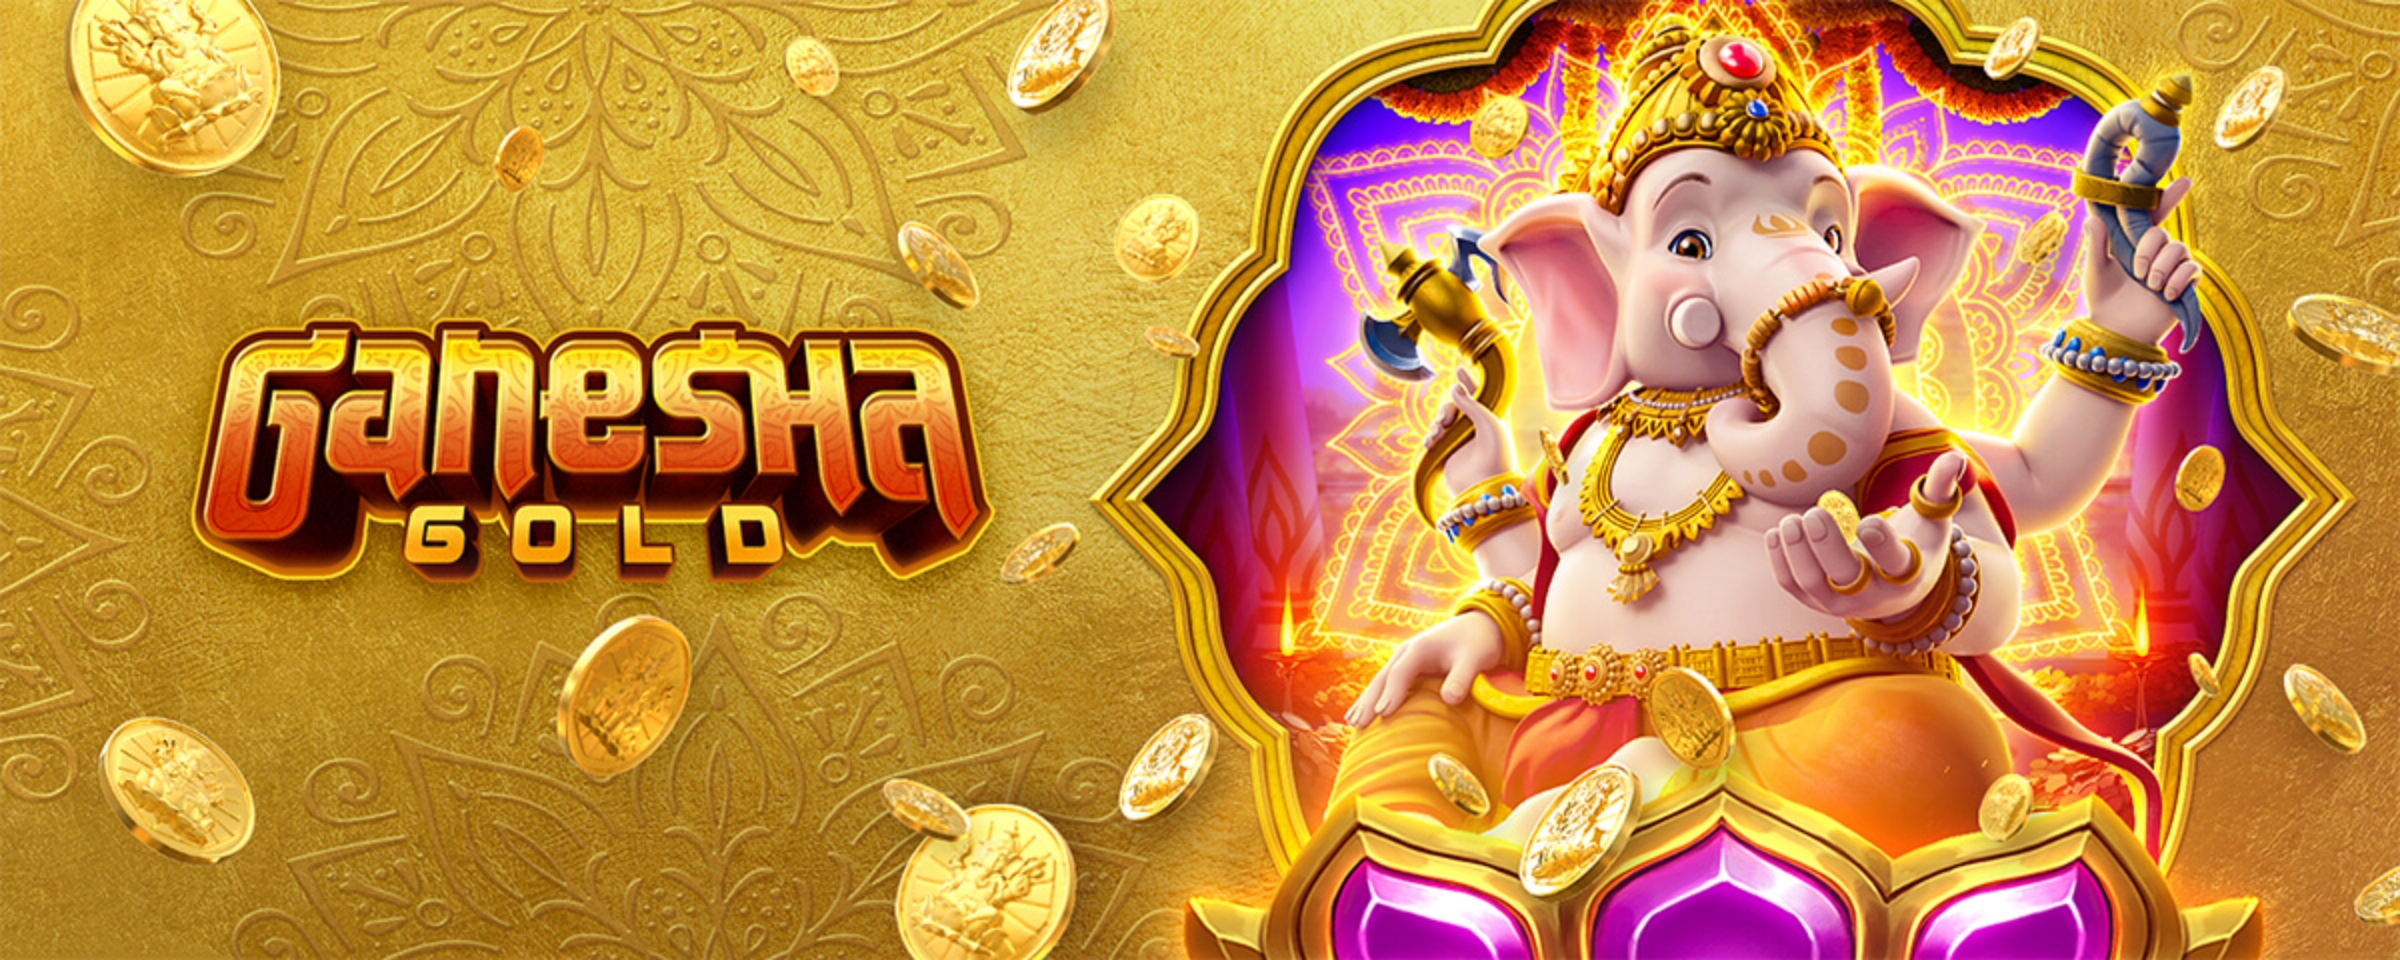 The Ganesha Fortune Online Slot Demo Game by PG Soft